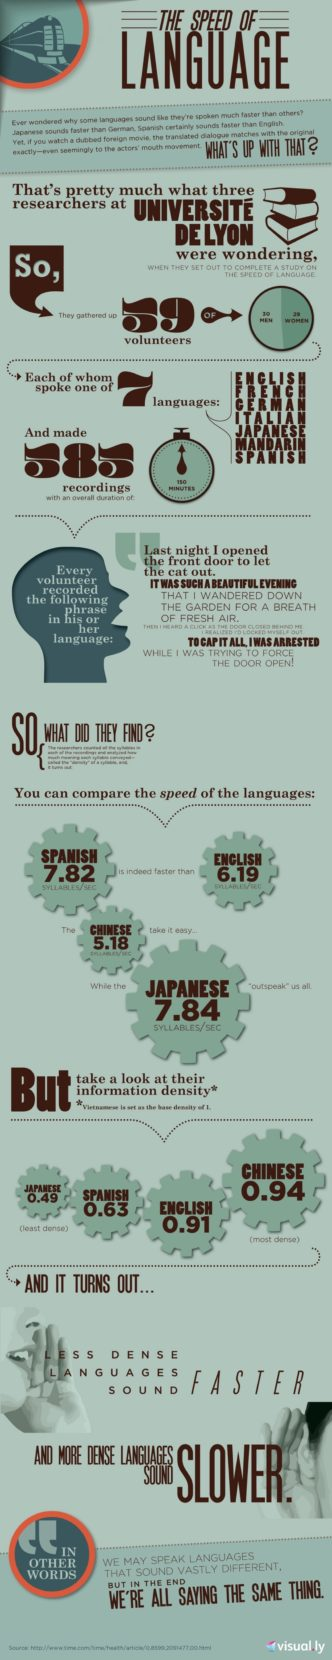 The speed of language #infographic